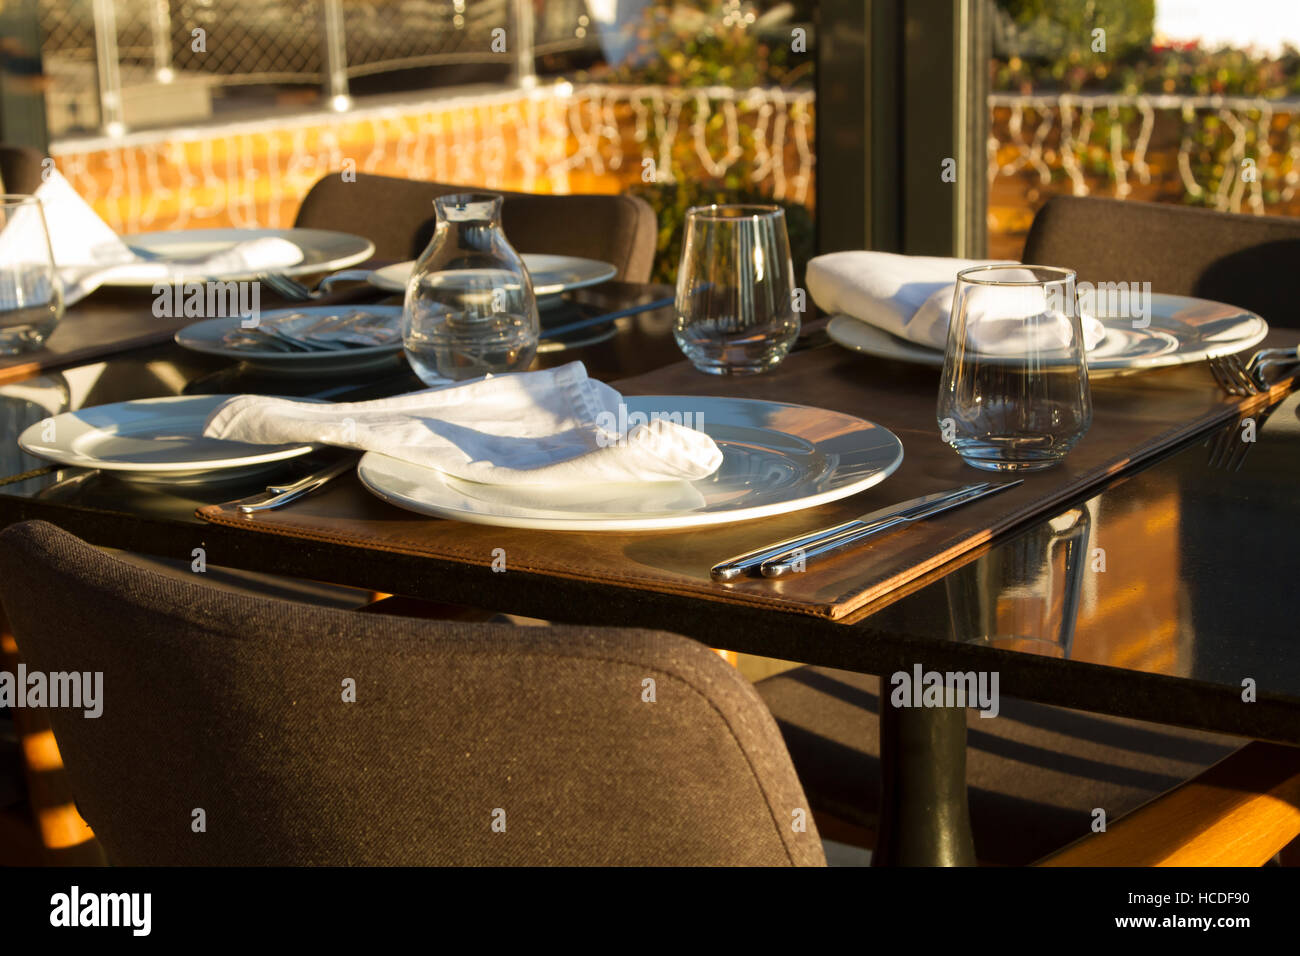 Table in the restaurant served for several persons with glasses, plates - Stock Image